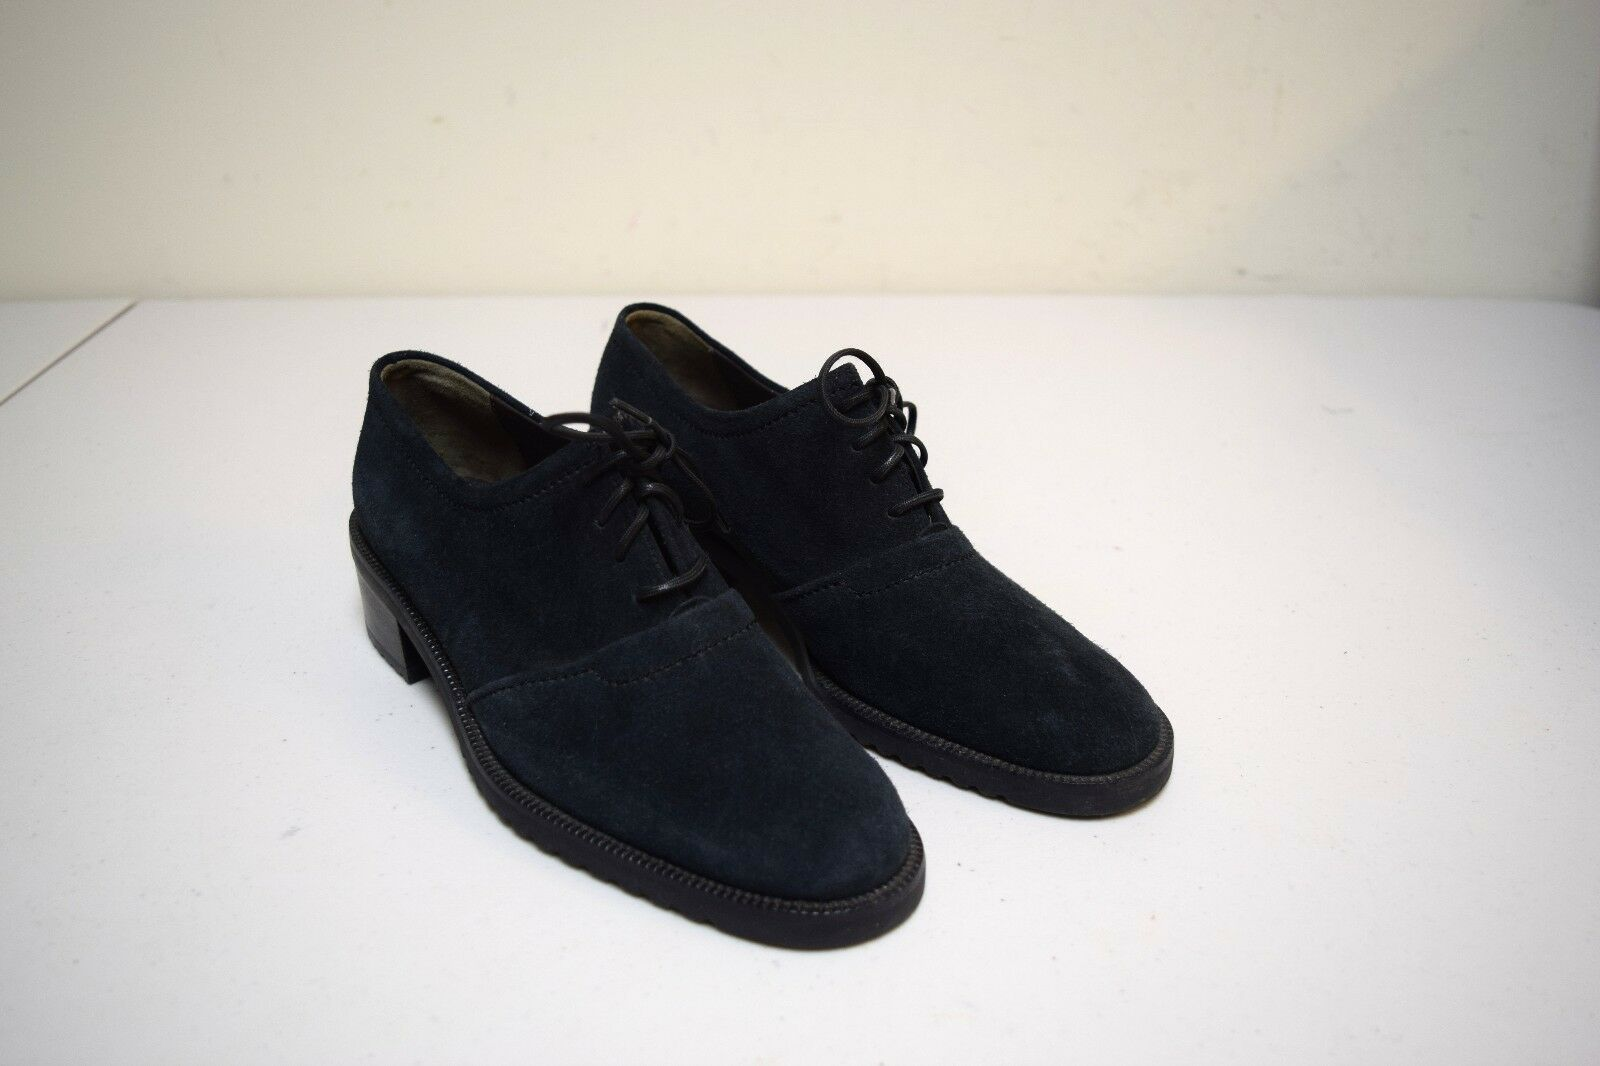 NOS Vintage BALLY Switzerland Black Suede Lace Up Oxfords w Lug Sole  Size 6